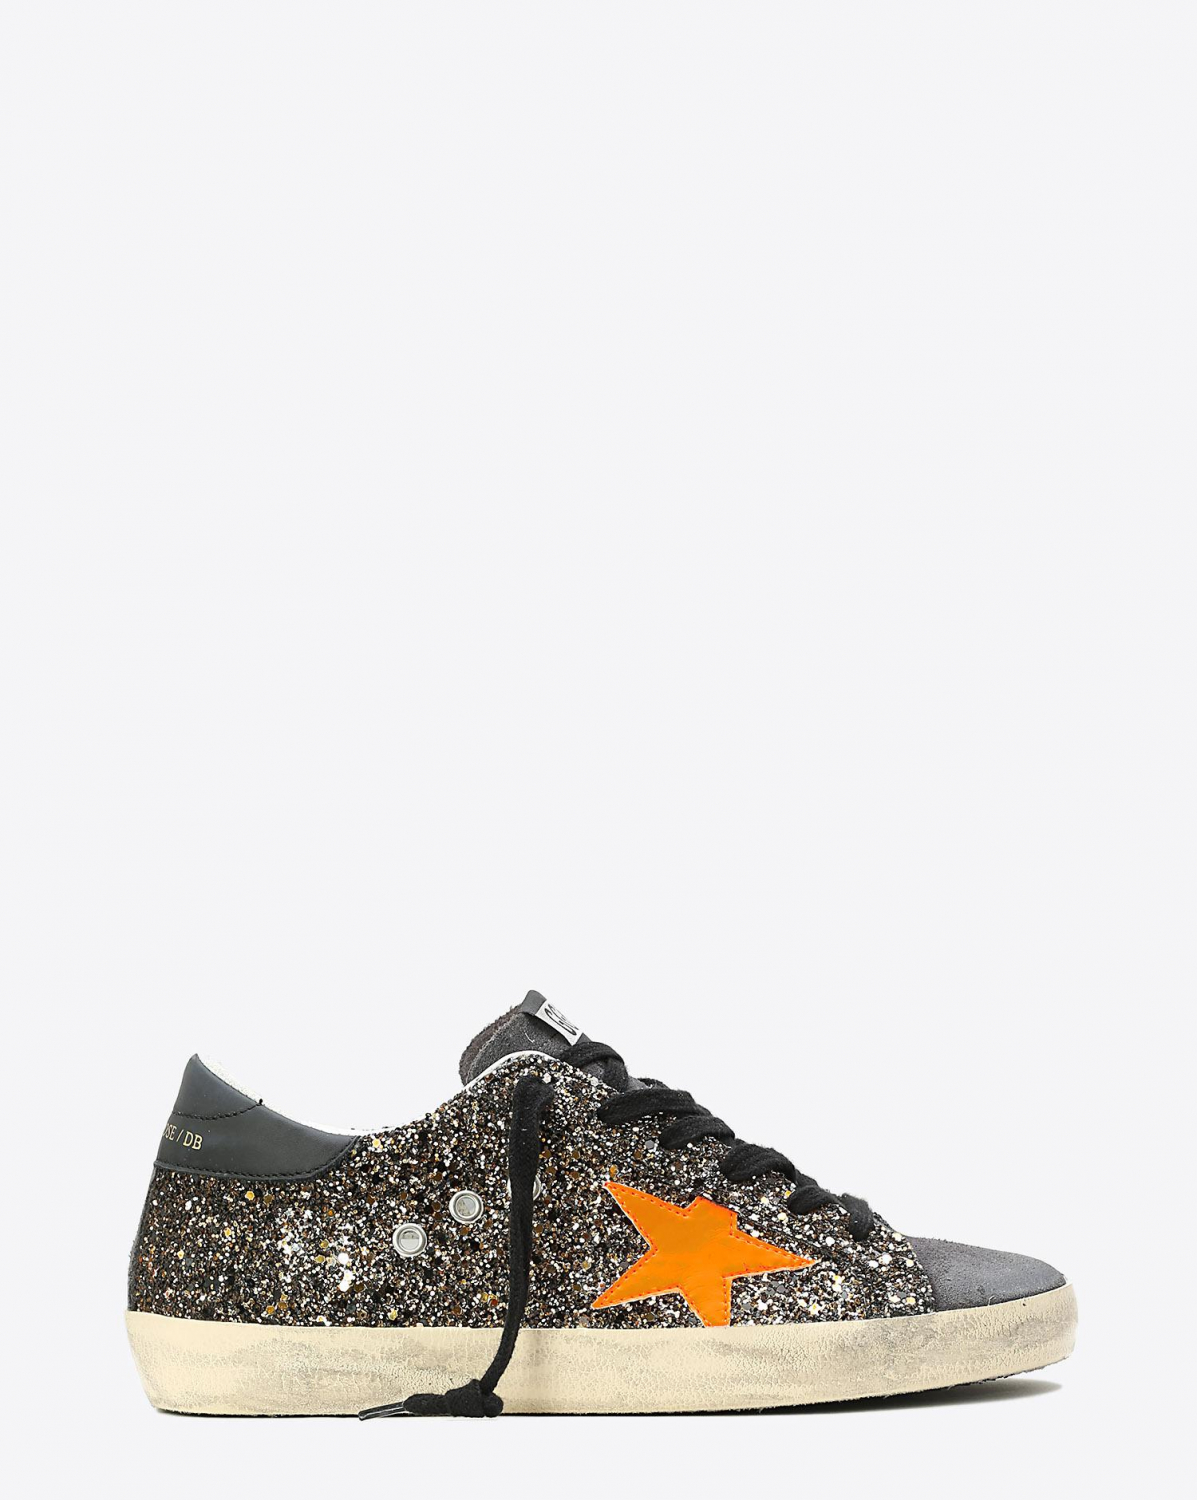 Golden Goose Woman Pré-Collection Sneakers Superstar Black Gold Glitter - Fluo Star